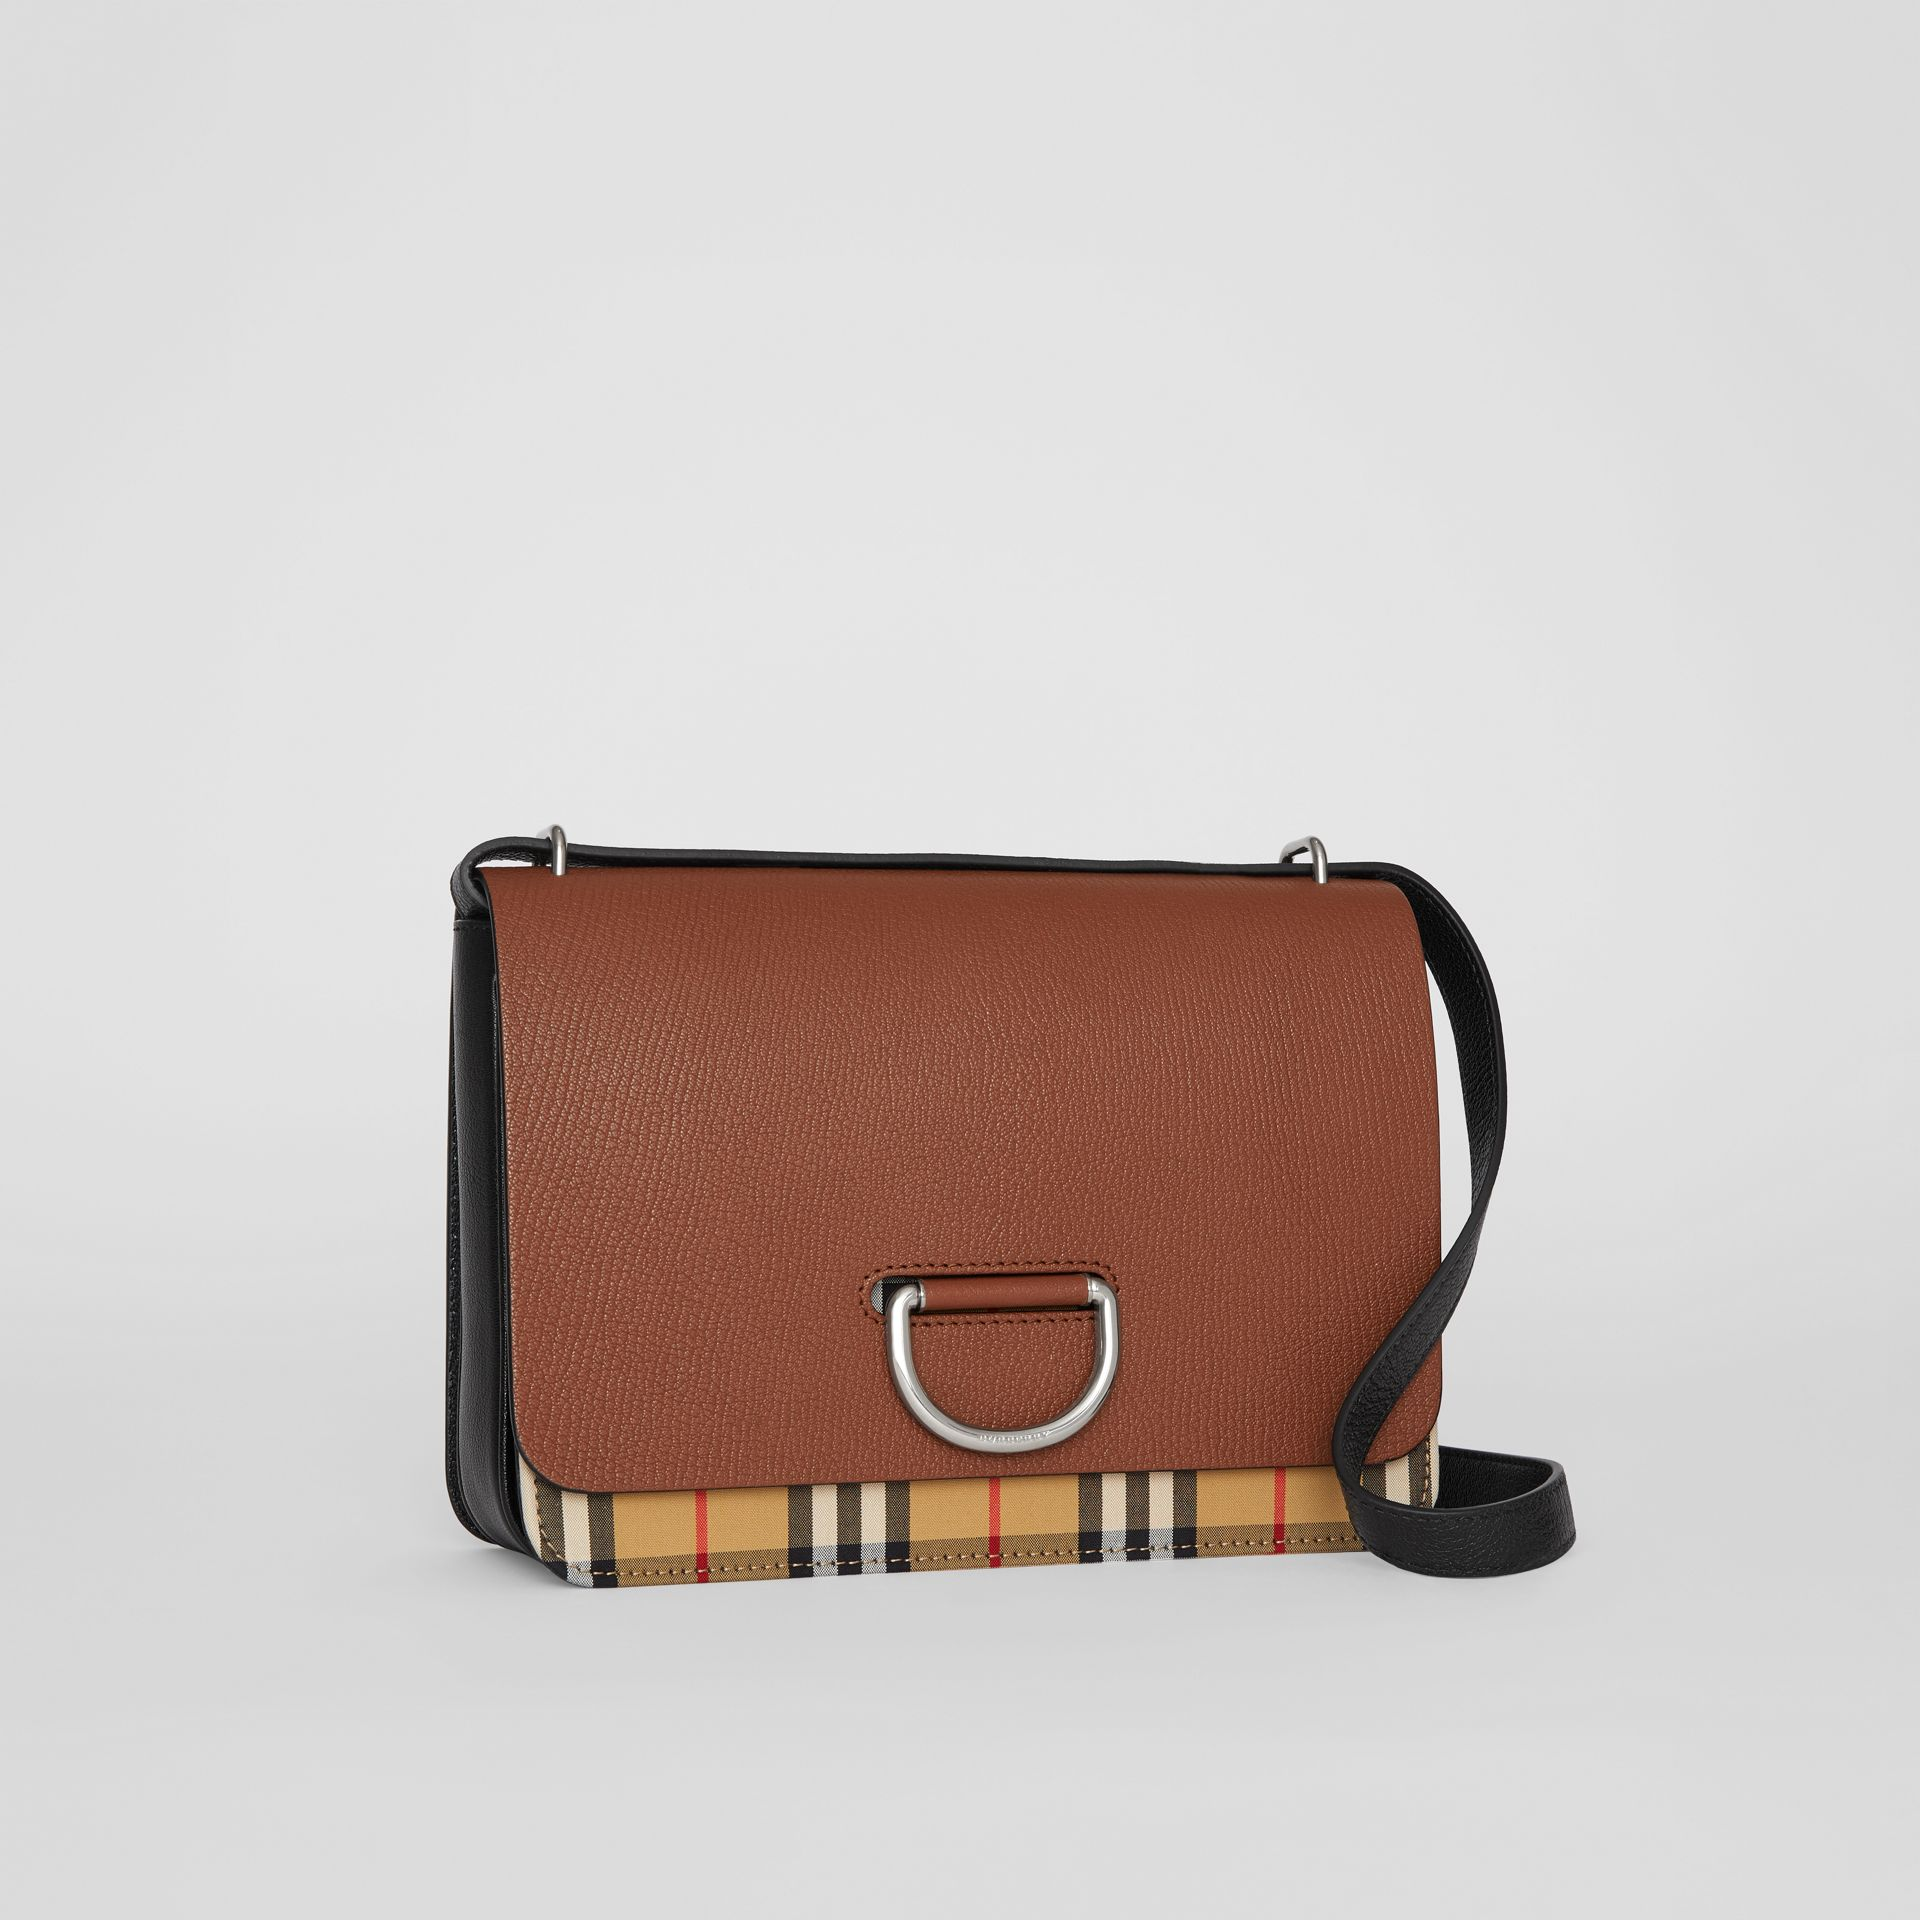 Borsa The D-ring media in pelle con motivo Vintage check (Marroncino/nero) - Donna | Burberry - immagine della galleria 6